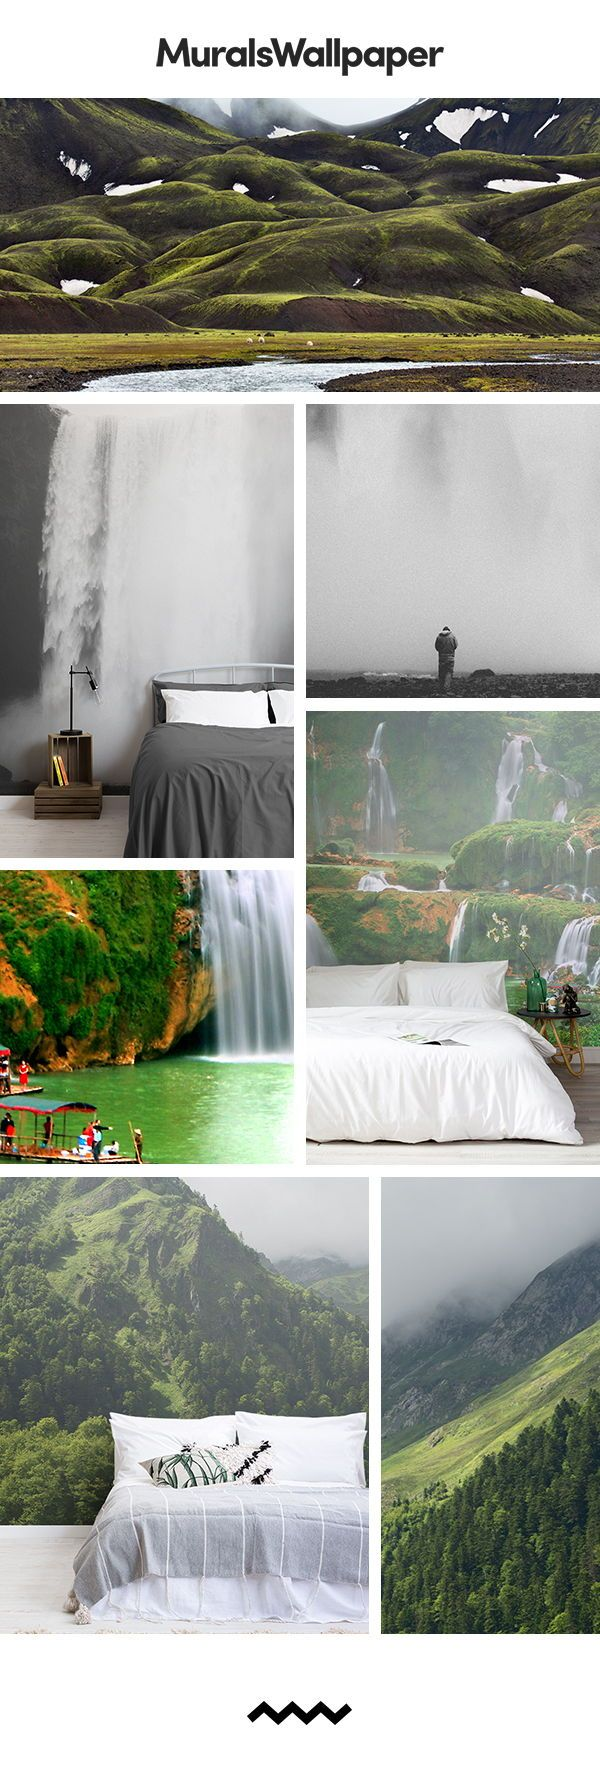 Nature bedroom ideas create with nature inspired bedroom forest wallpaper, forming serene spaces ...